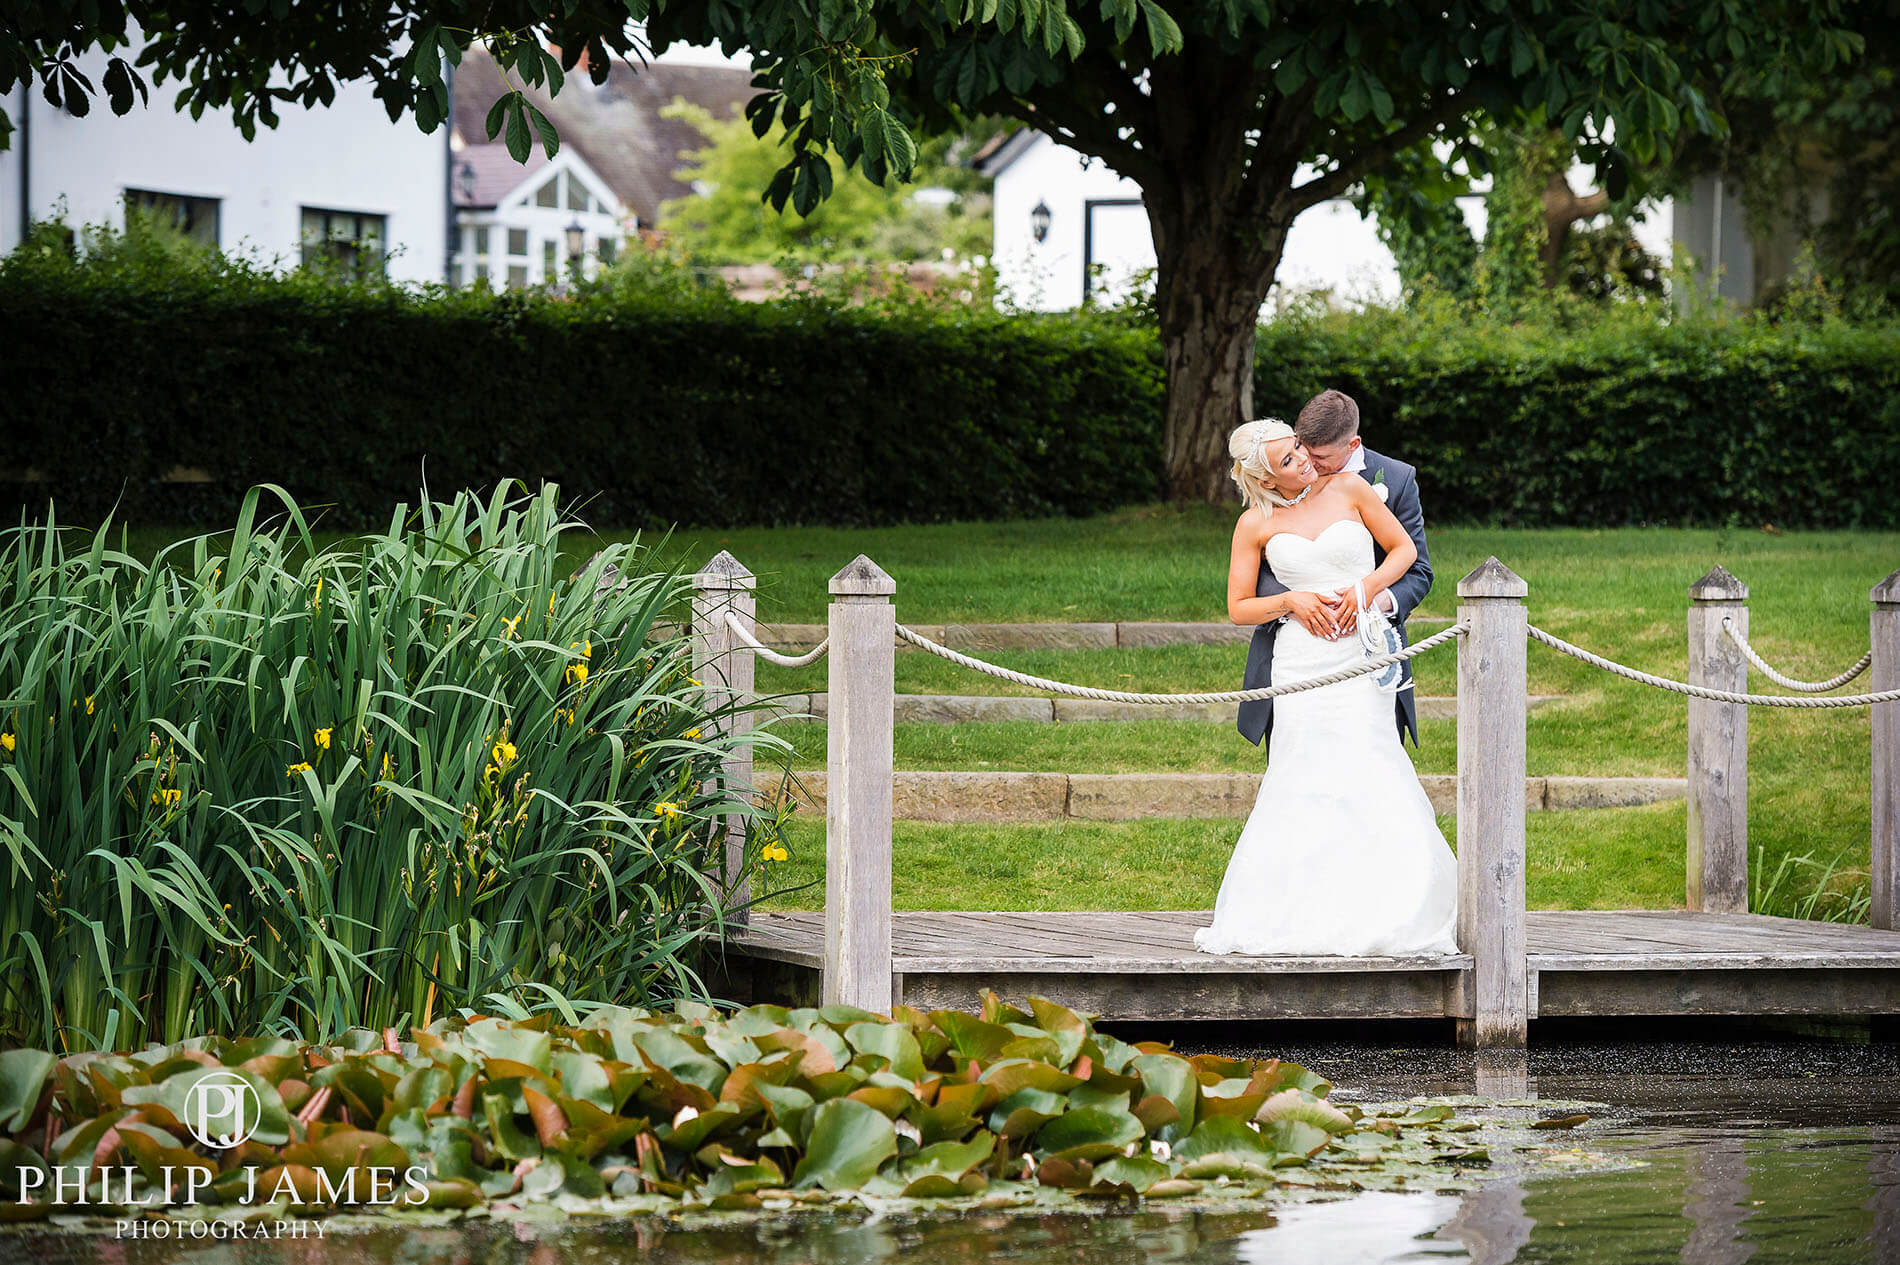 Birmingham Wedding Photographer - Philip James Photography based in Solihull (18 of 68)